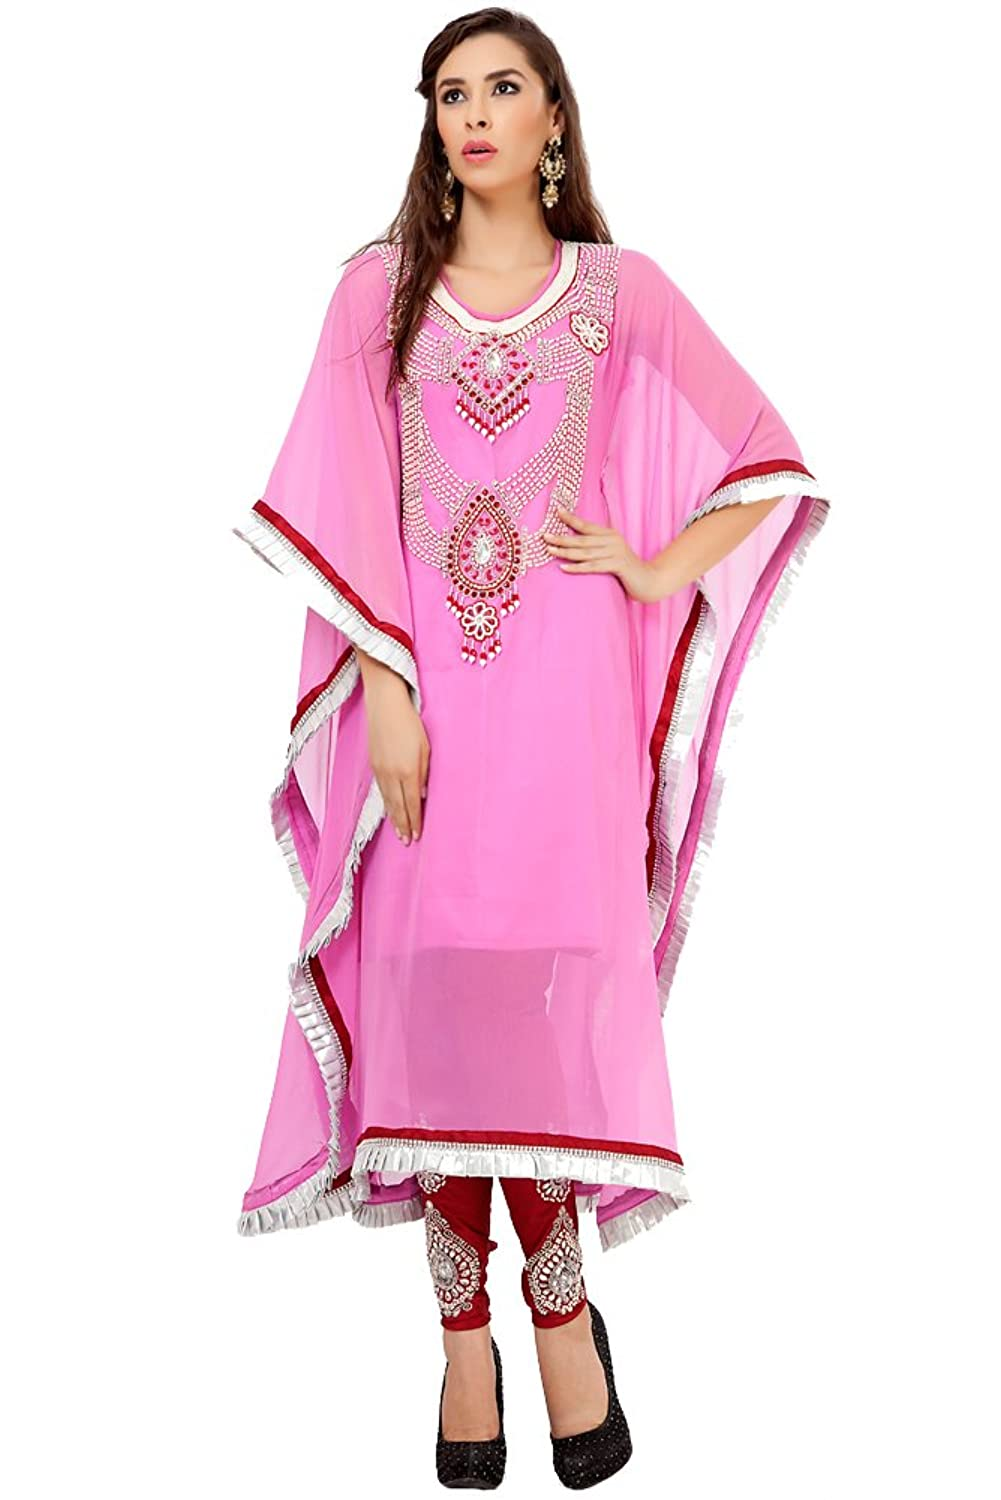 PalasFashion Salwar Kameez Designer Kaftan Dress Women's KKPF1035